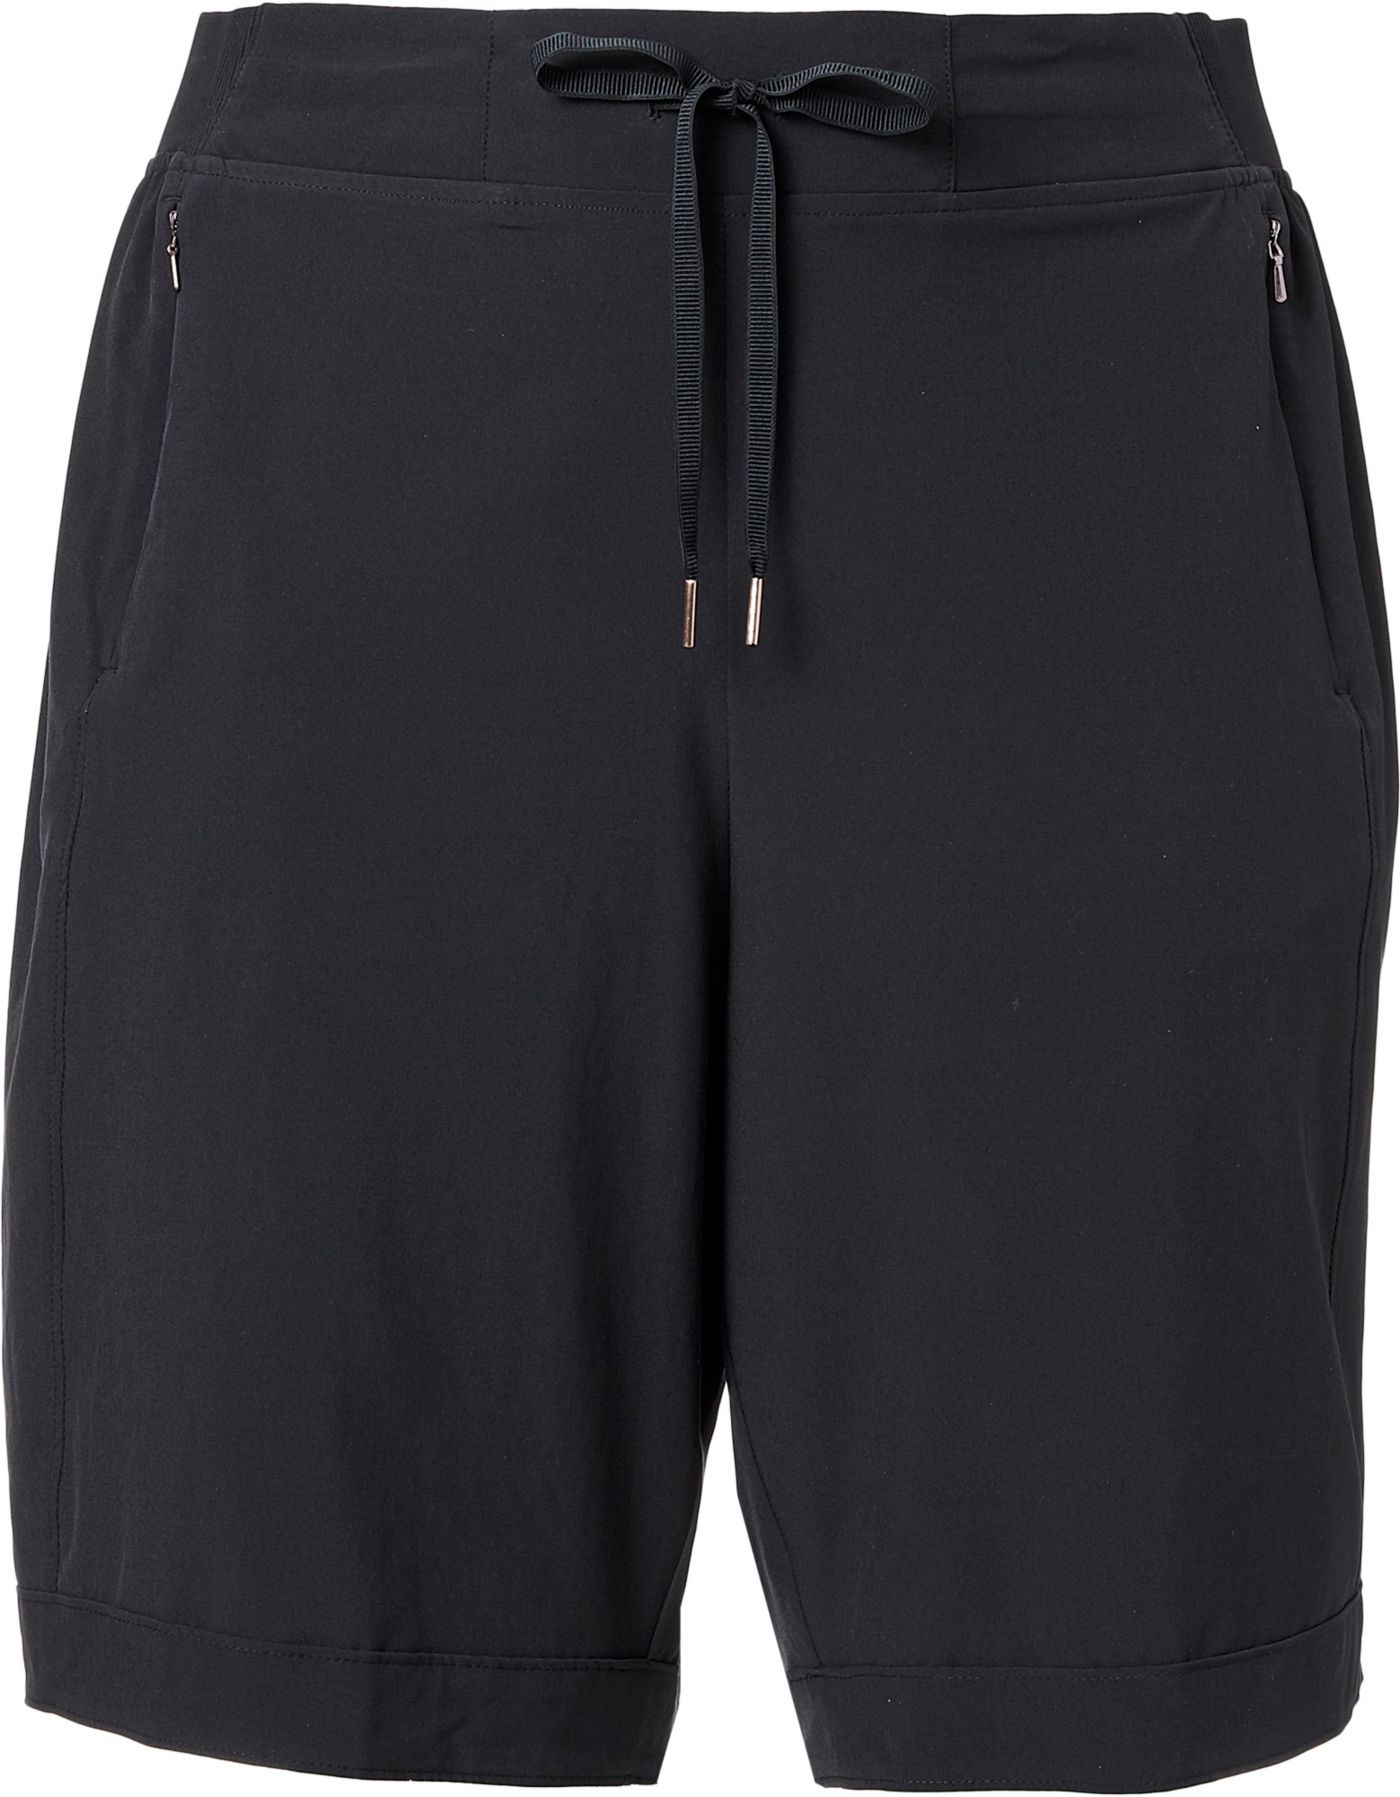 CALIA by Carrie Underwood Women's Plus Size Anywhere Bermuda Shorts